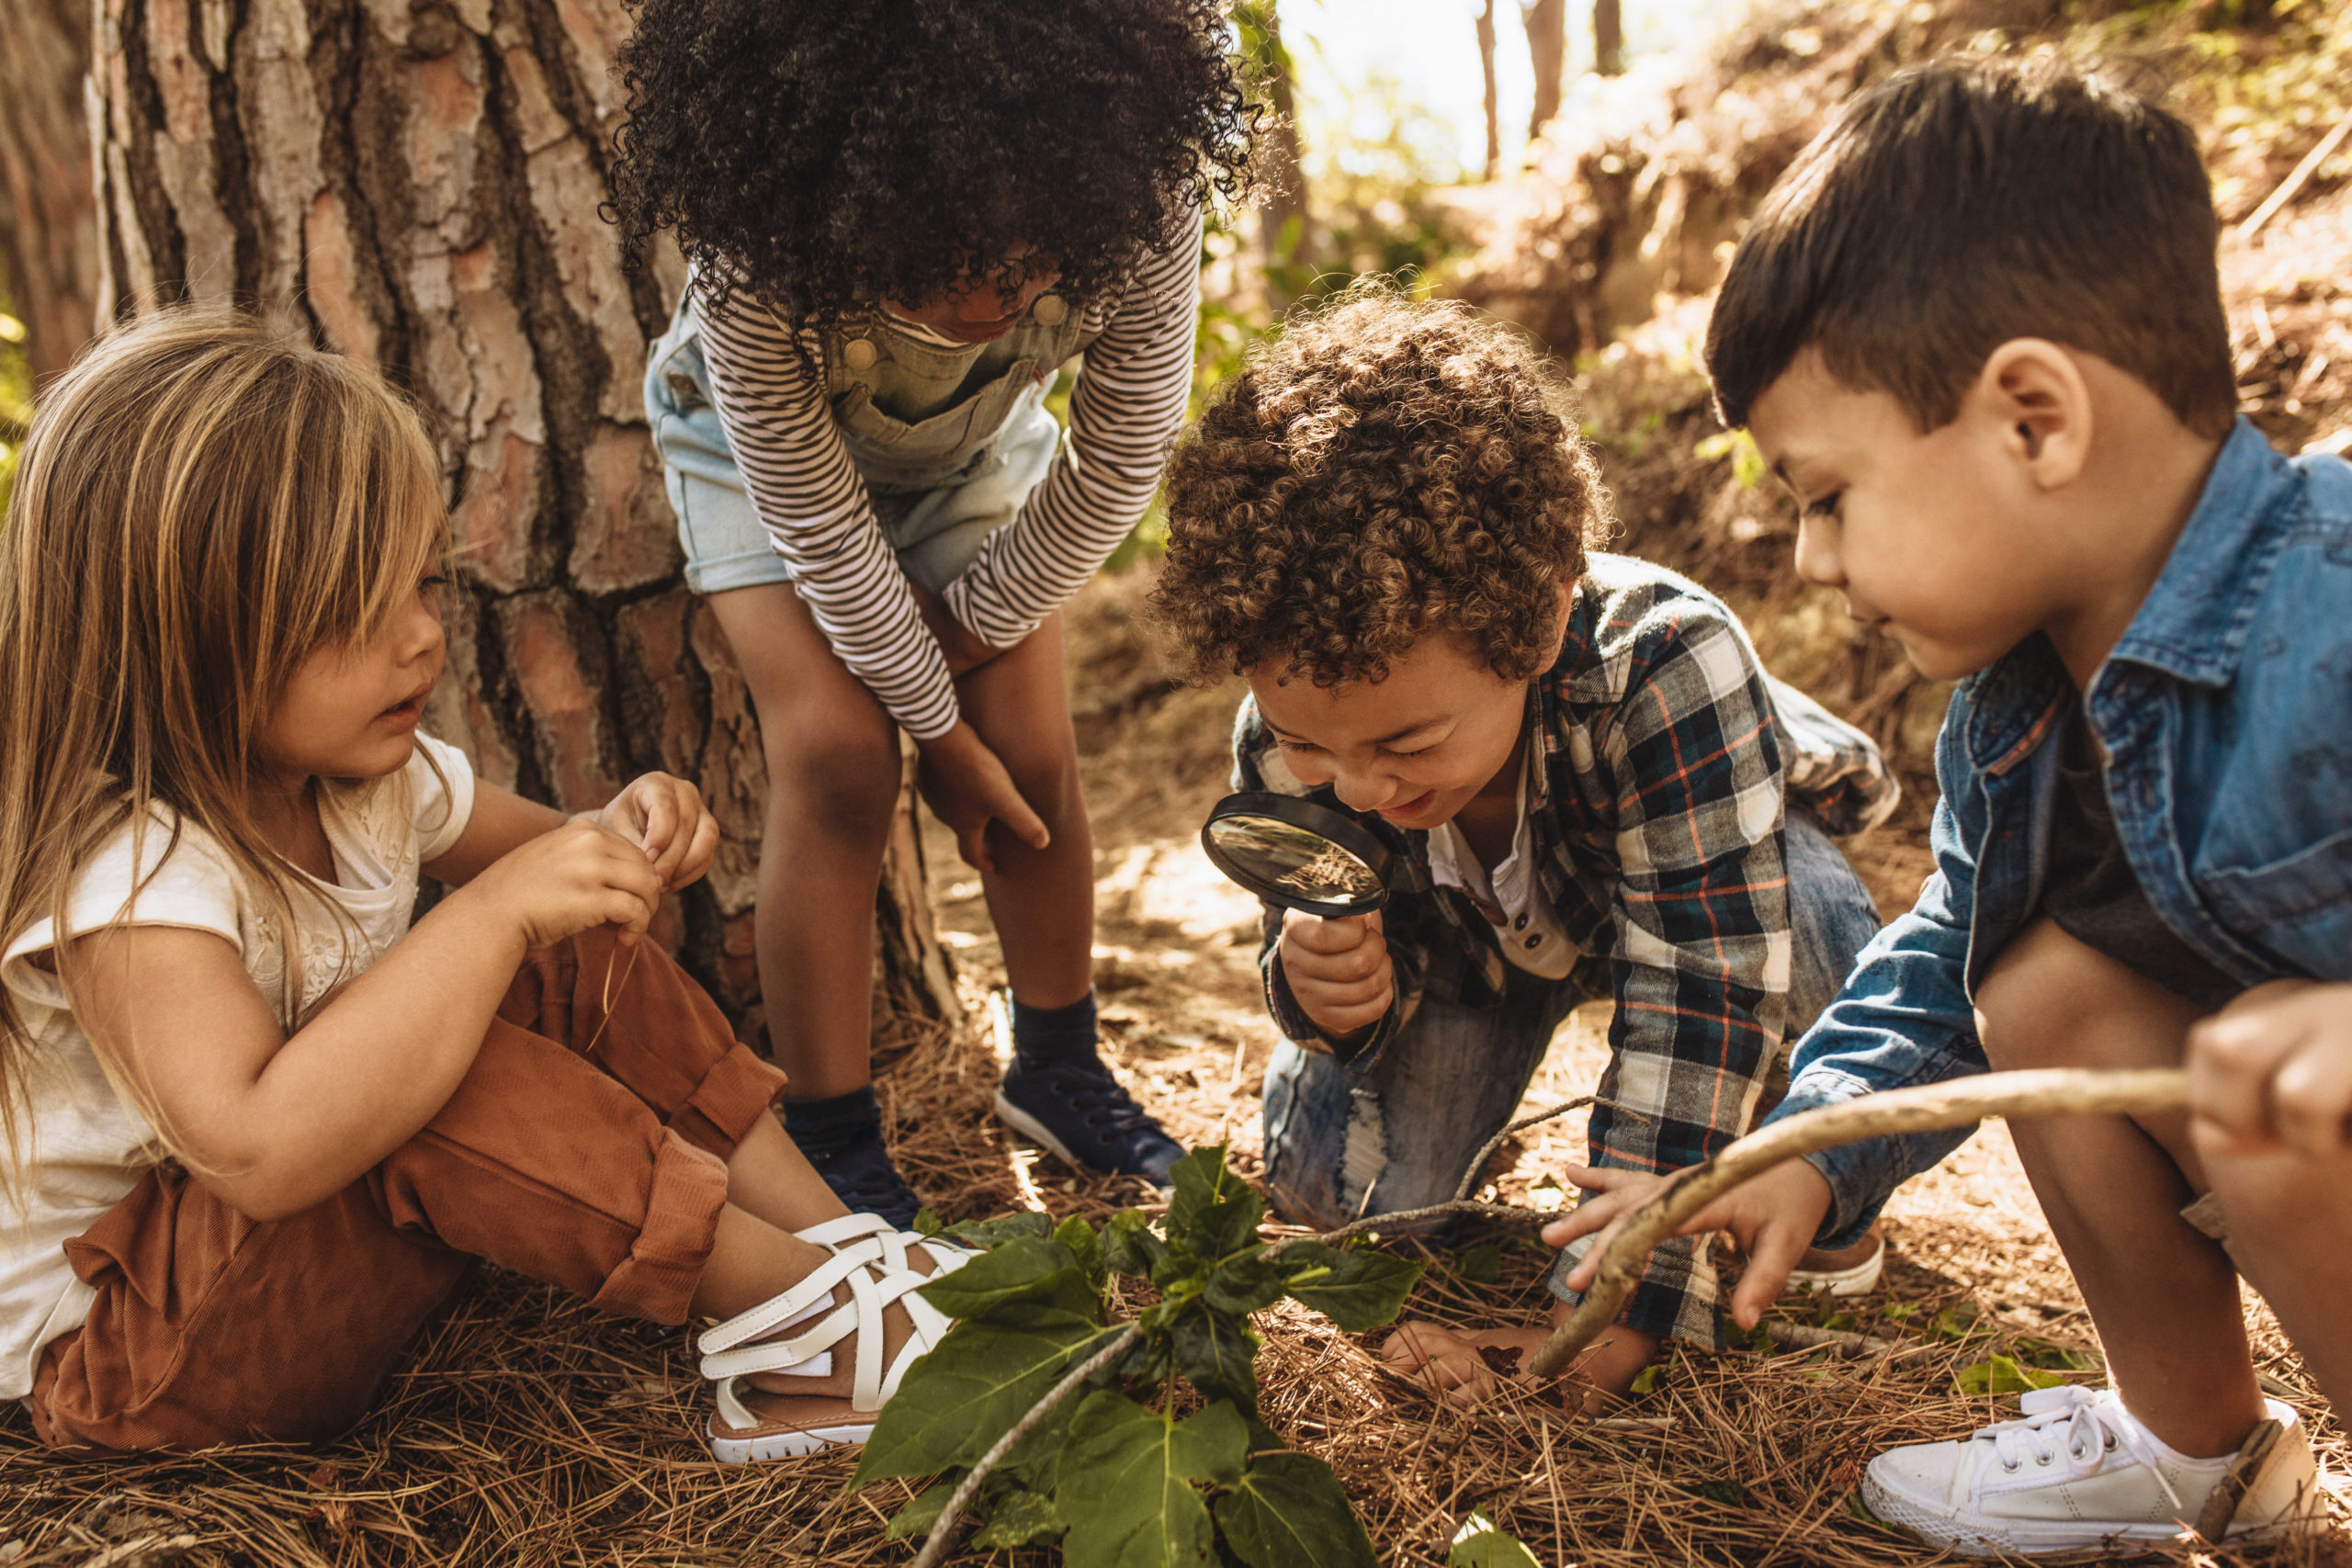 four kids exploring nature, one boy holding a magnifying glass